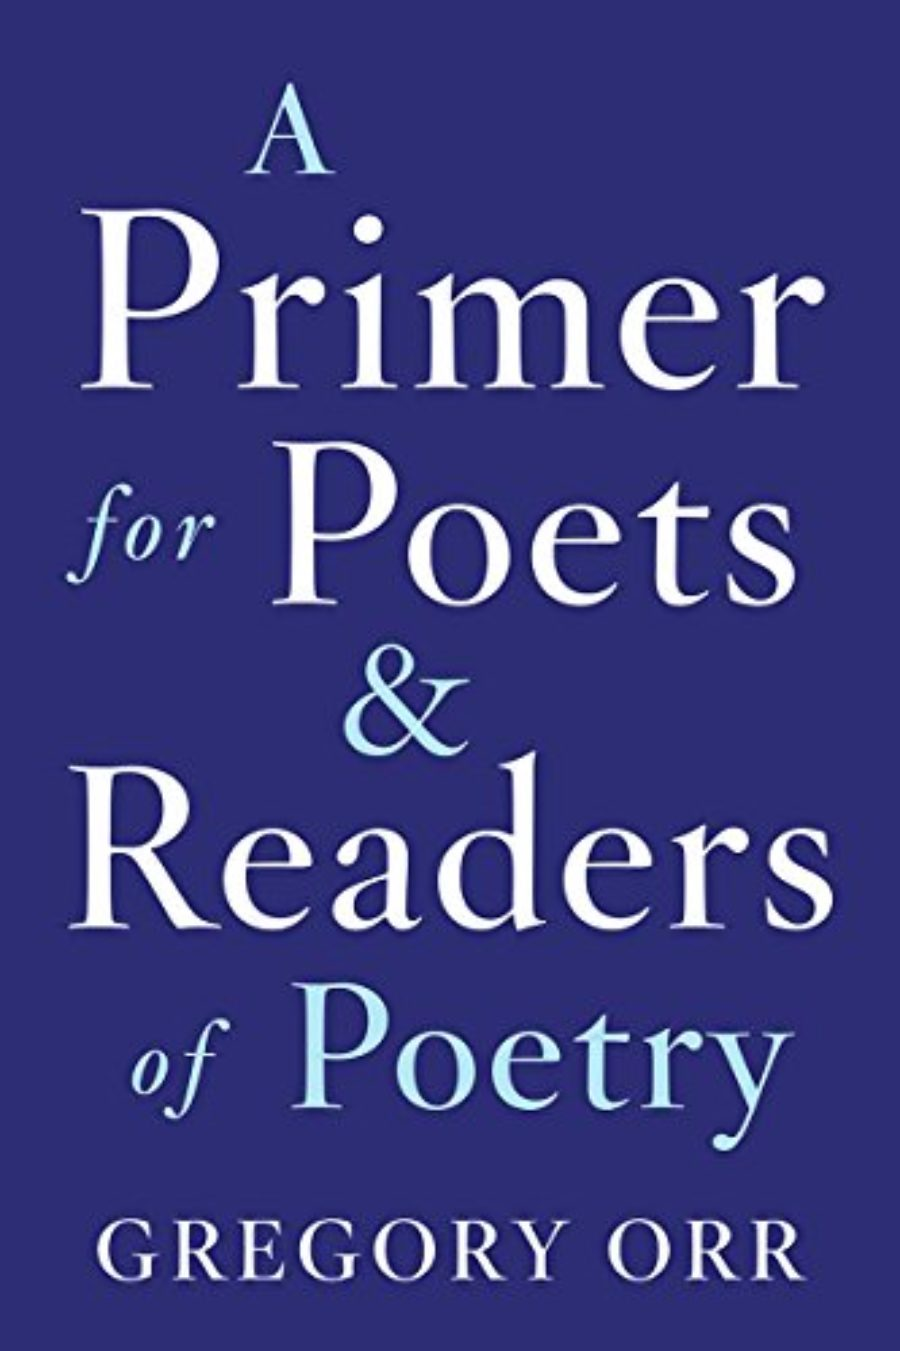 Cover of A Primer for Poets and Readers of Poetry